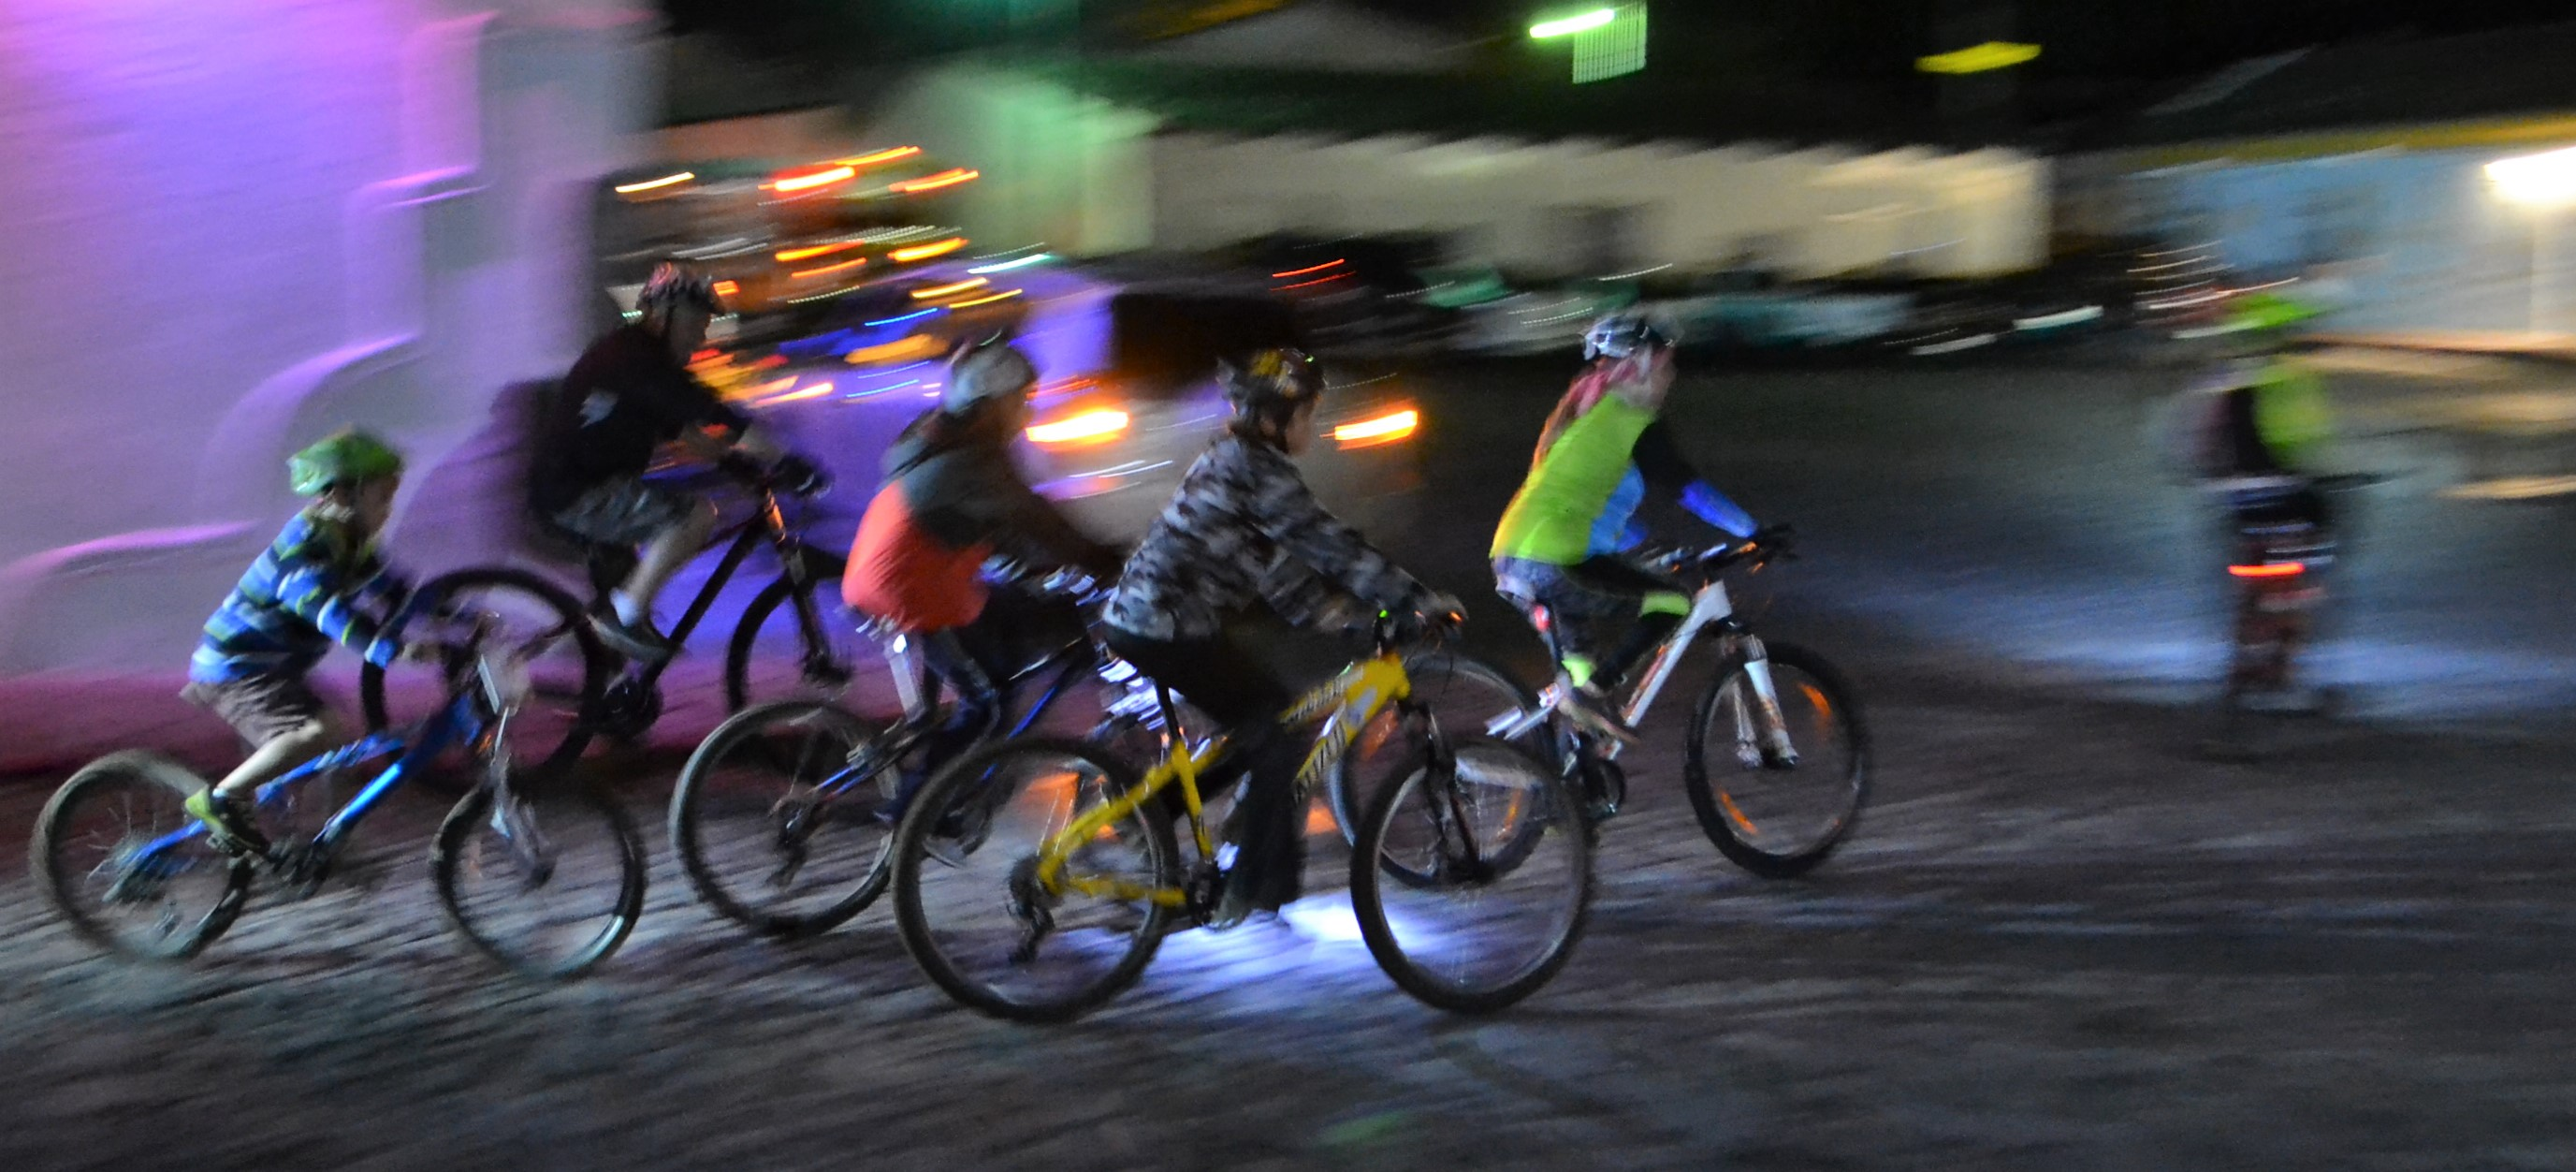 night rider, antigua guatemala tour, visiting antigua, riding bikes with kids